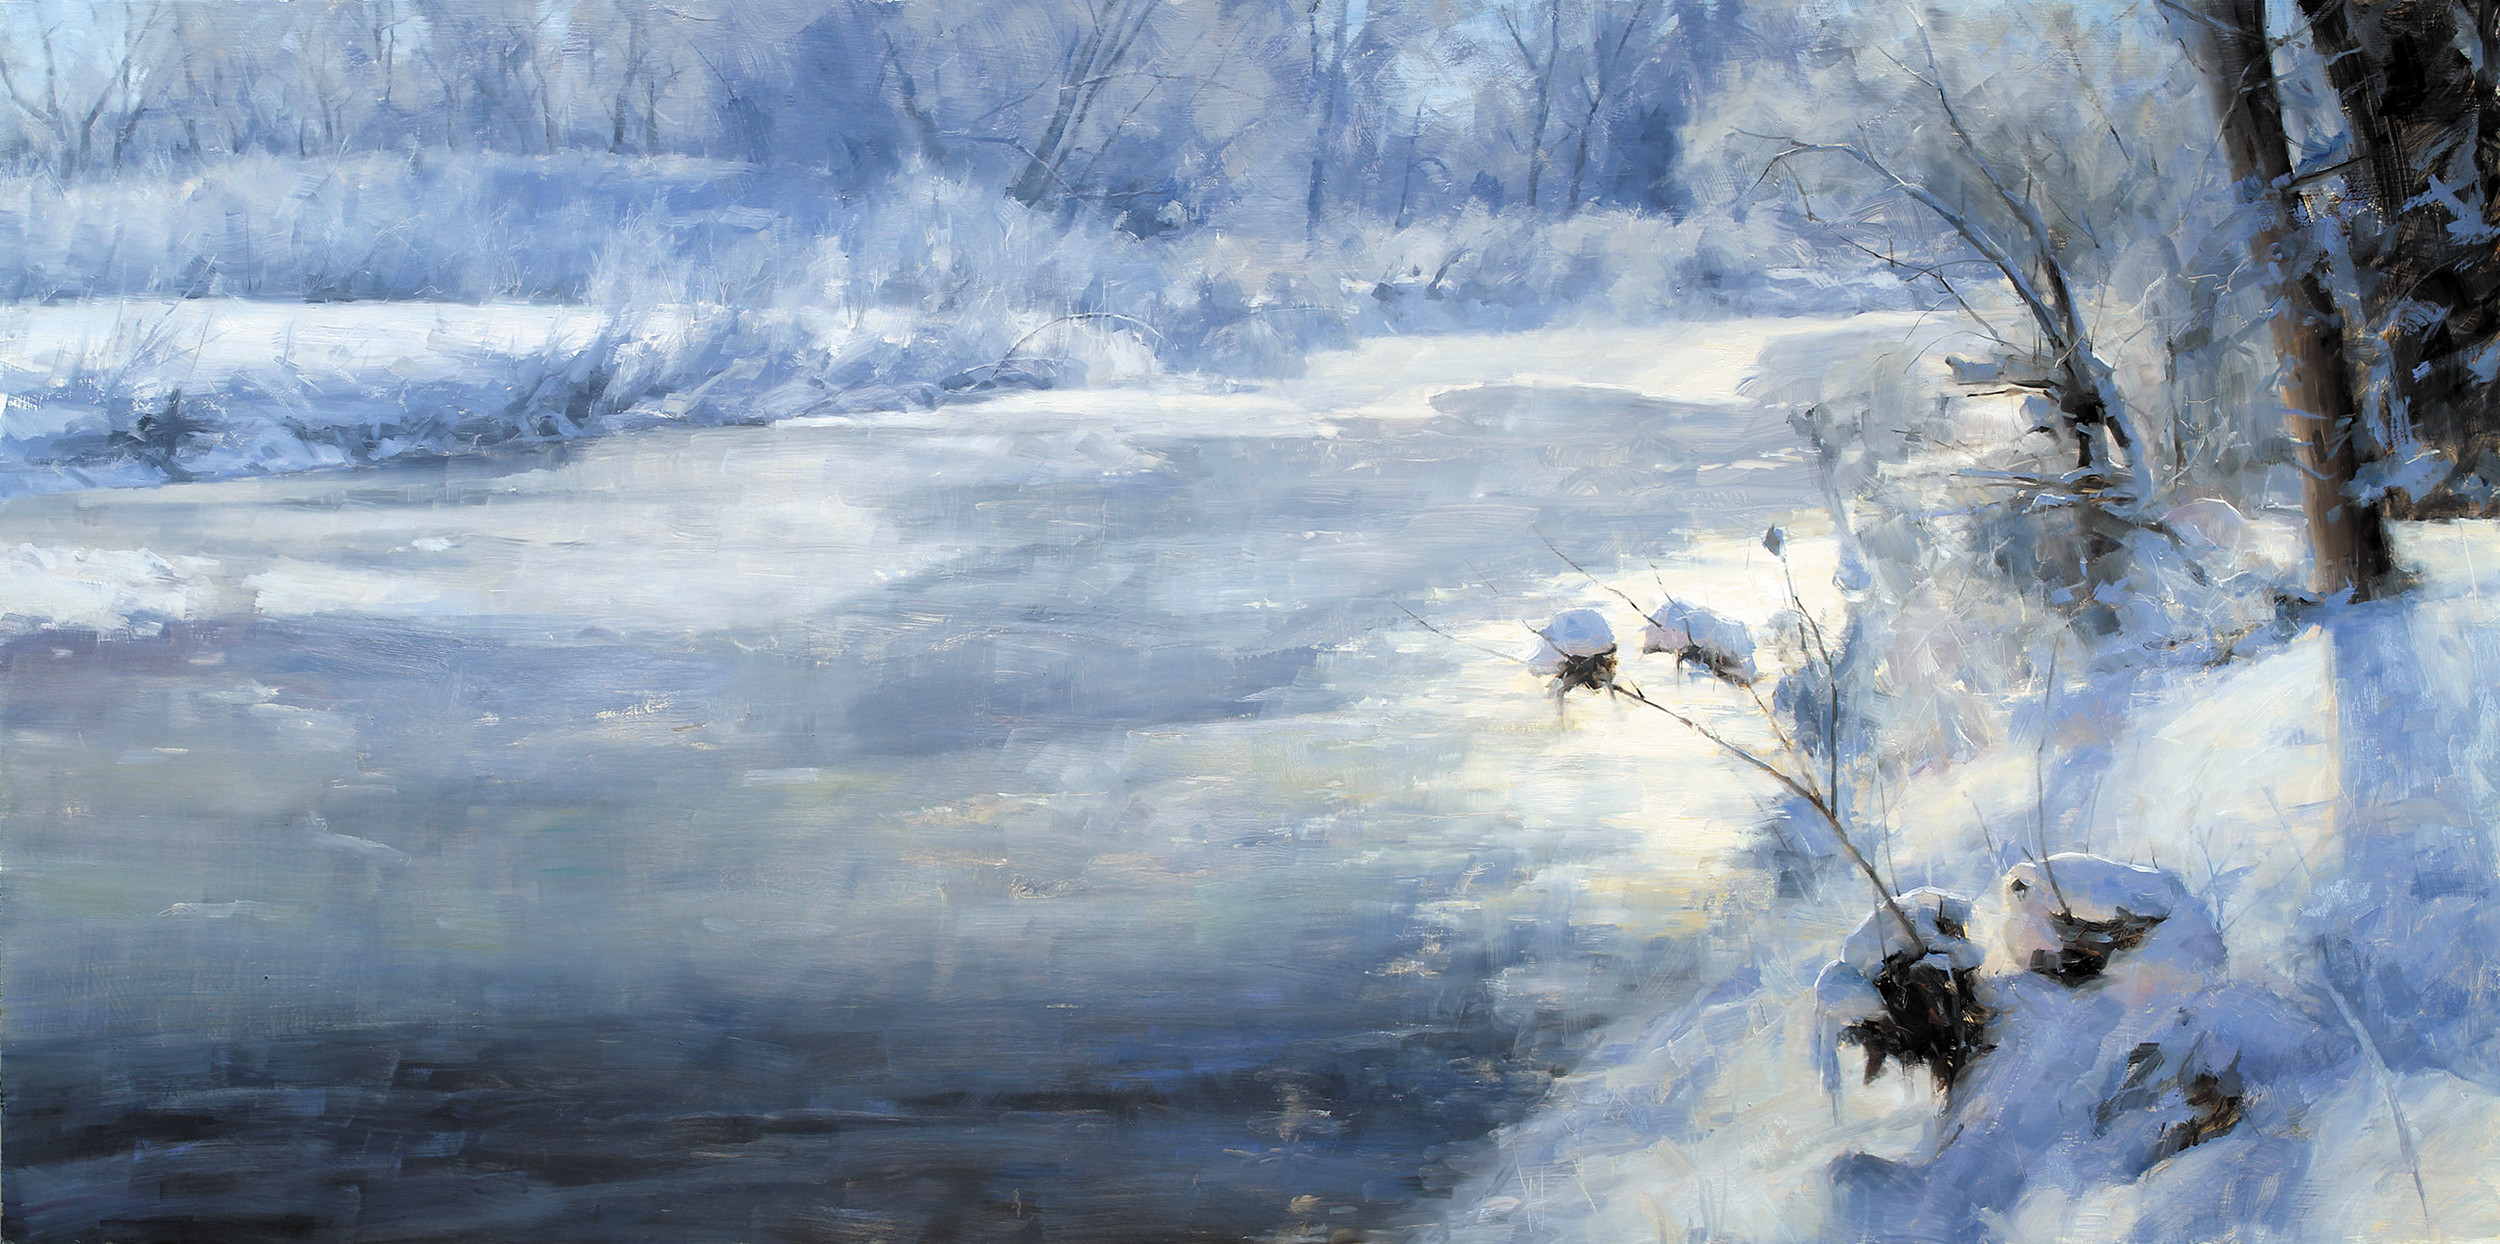 """January on the Poudre"" by David Santillanes is included in his show, ""Capturing Atmosphere,"" at the Evergreen Fine Arts Gallery."